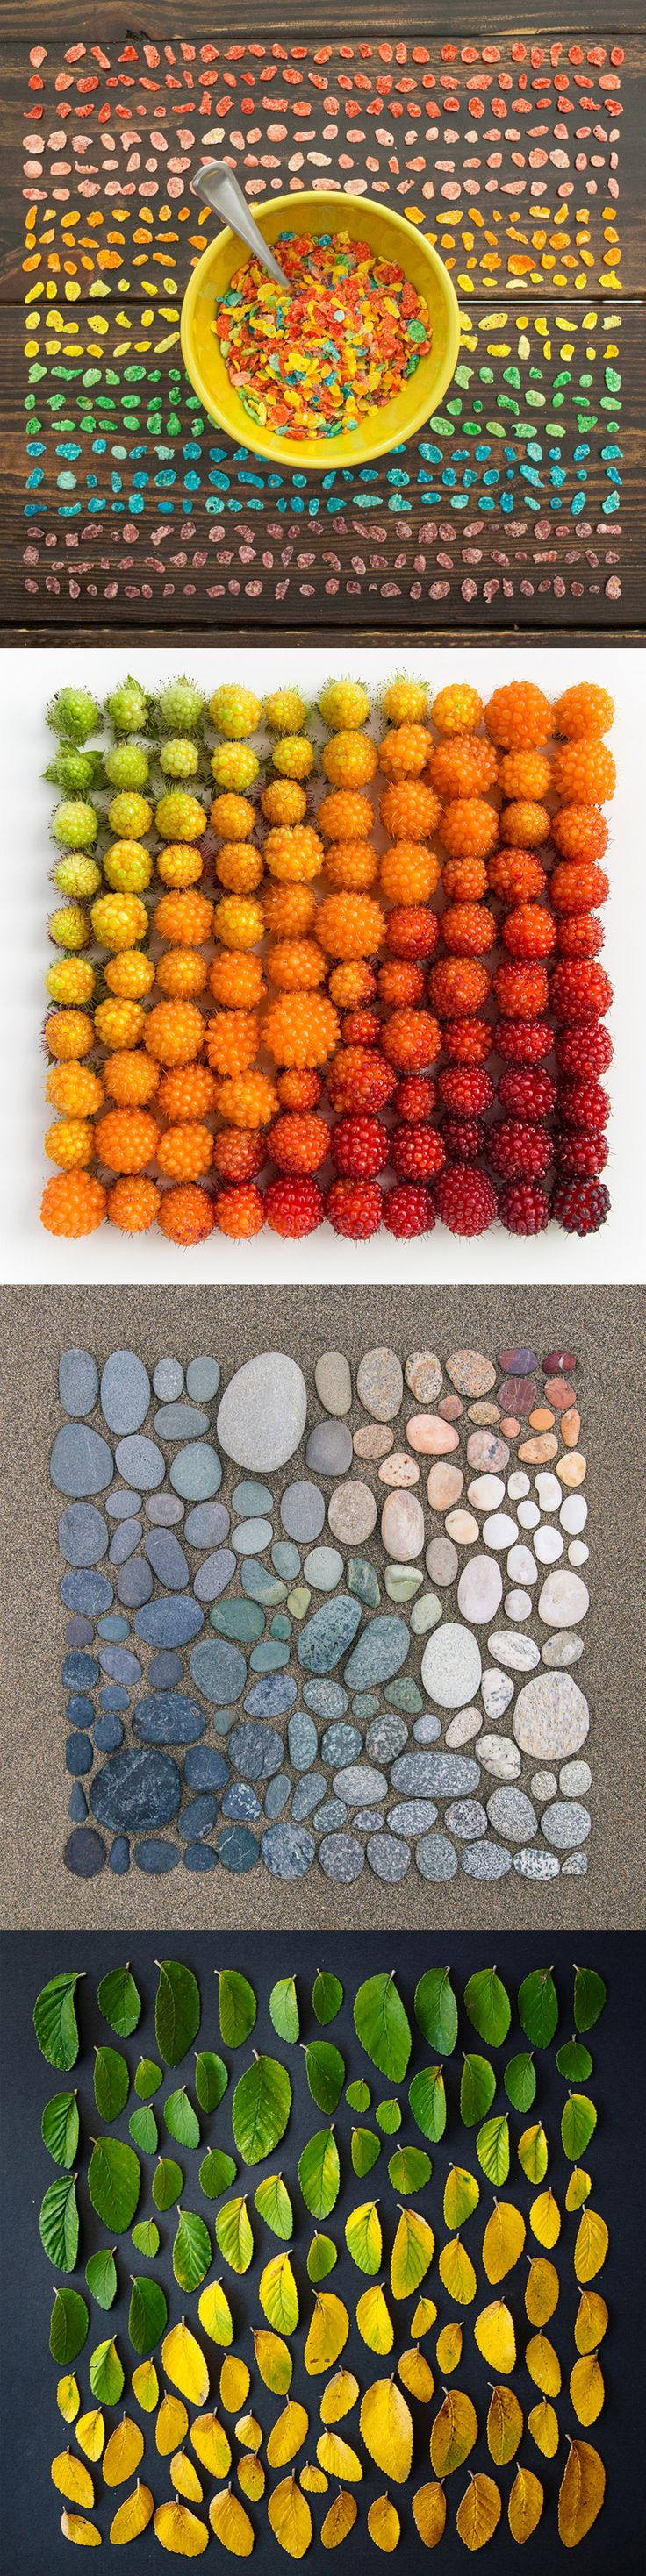 Arrangements of Colorful Objects and Food